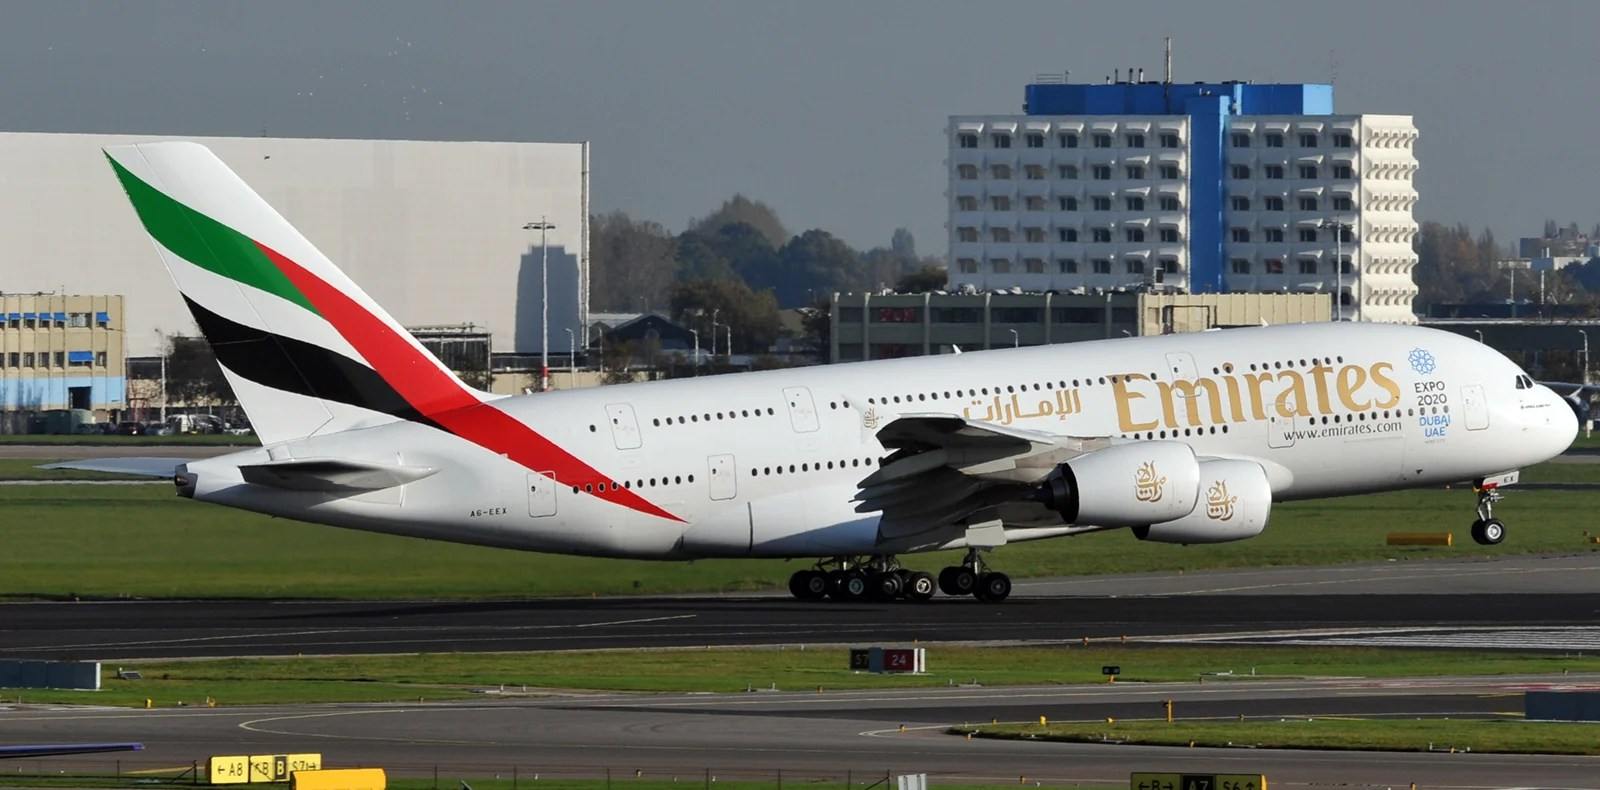 Emirates is requiring select passengers from the U.S. and other countries to get a coronavirus test result before flying